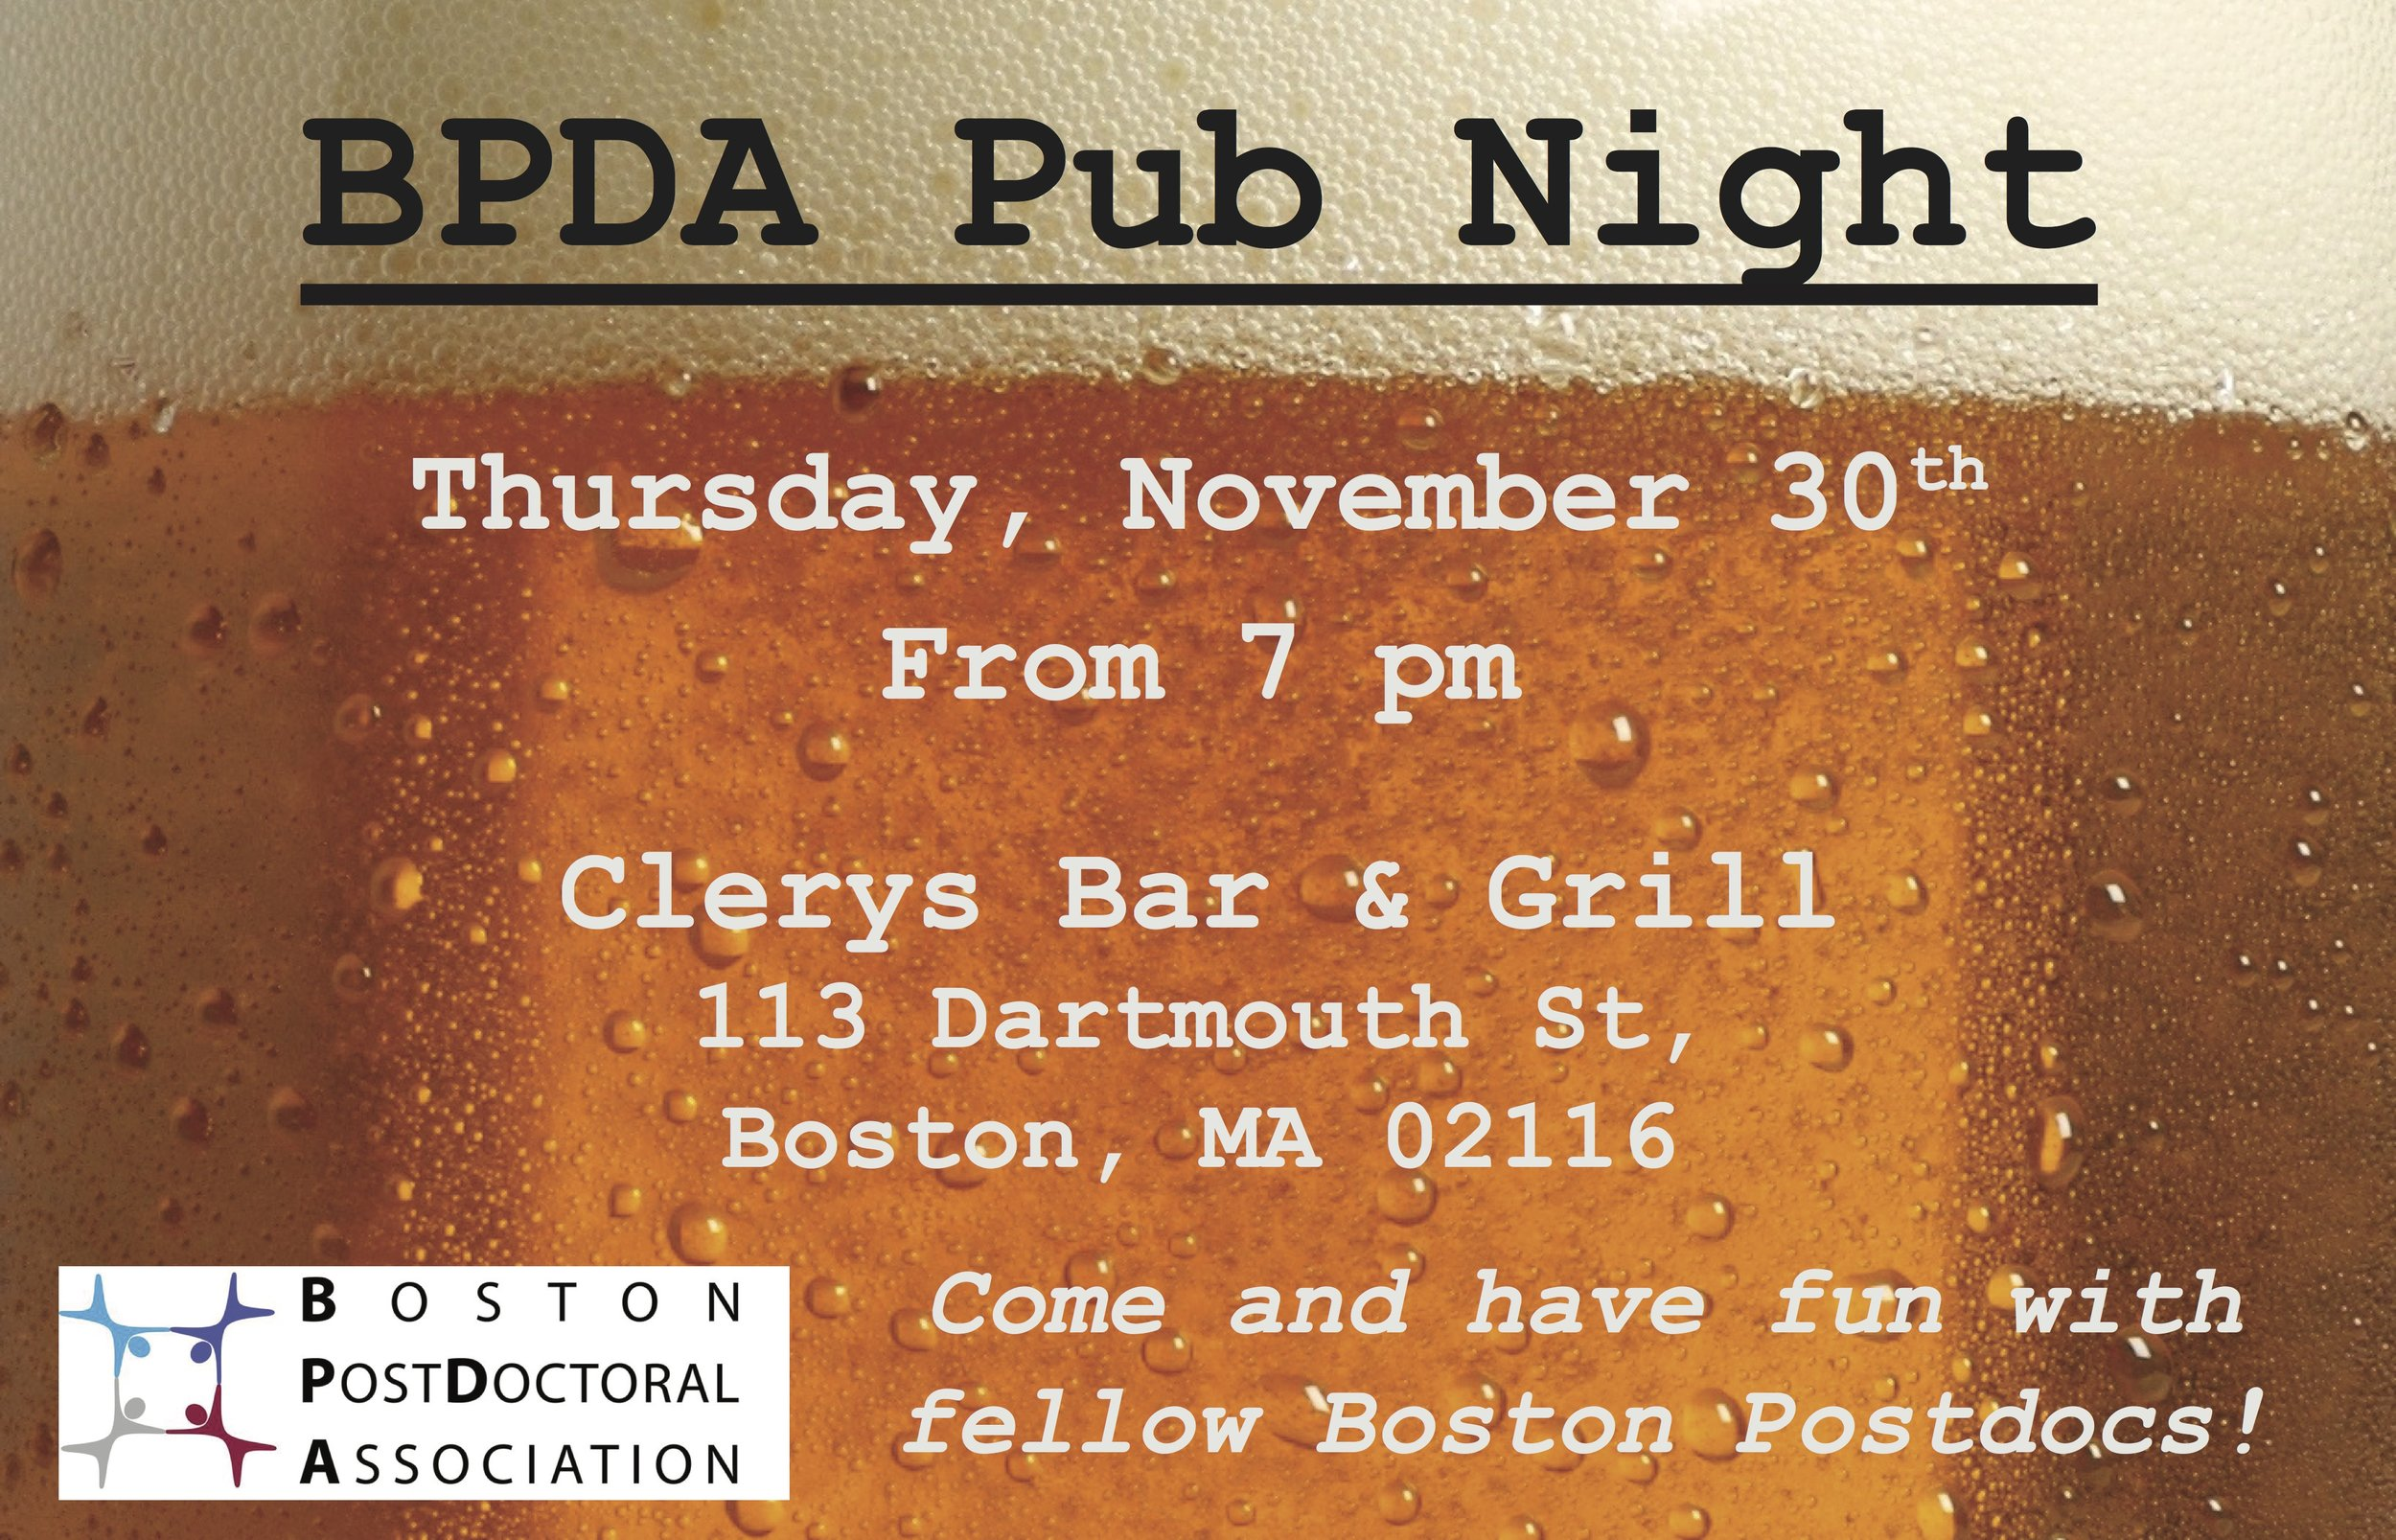 Flyer_BPDA Pubnight.jpg